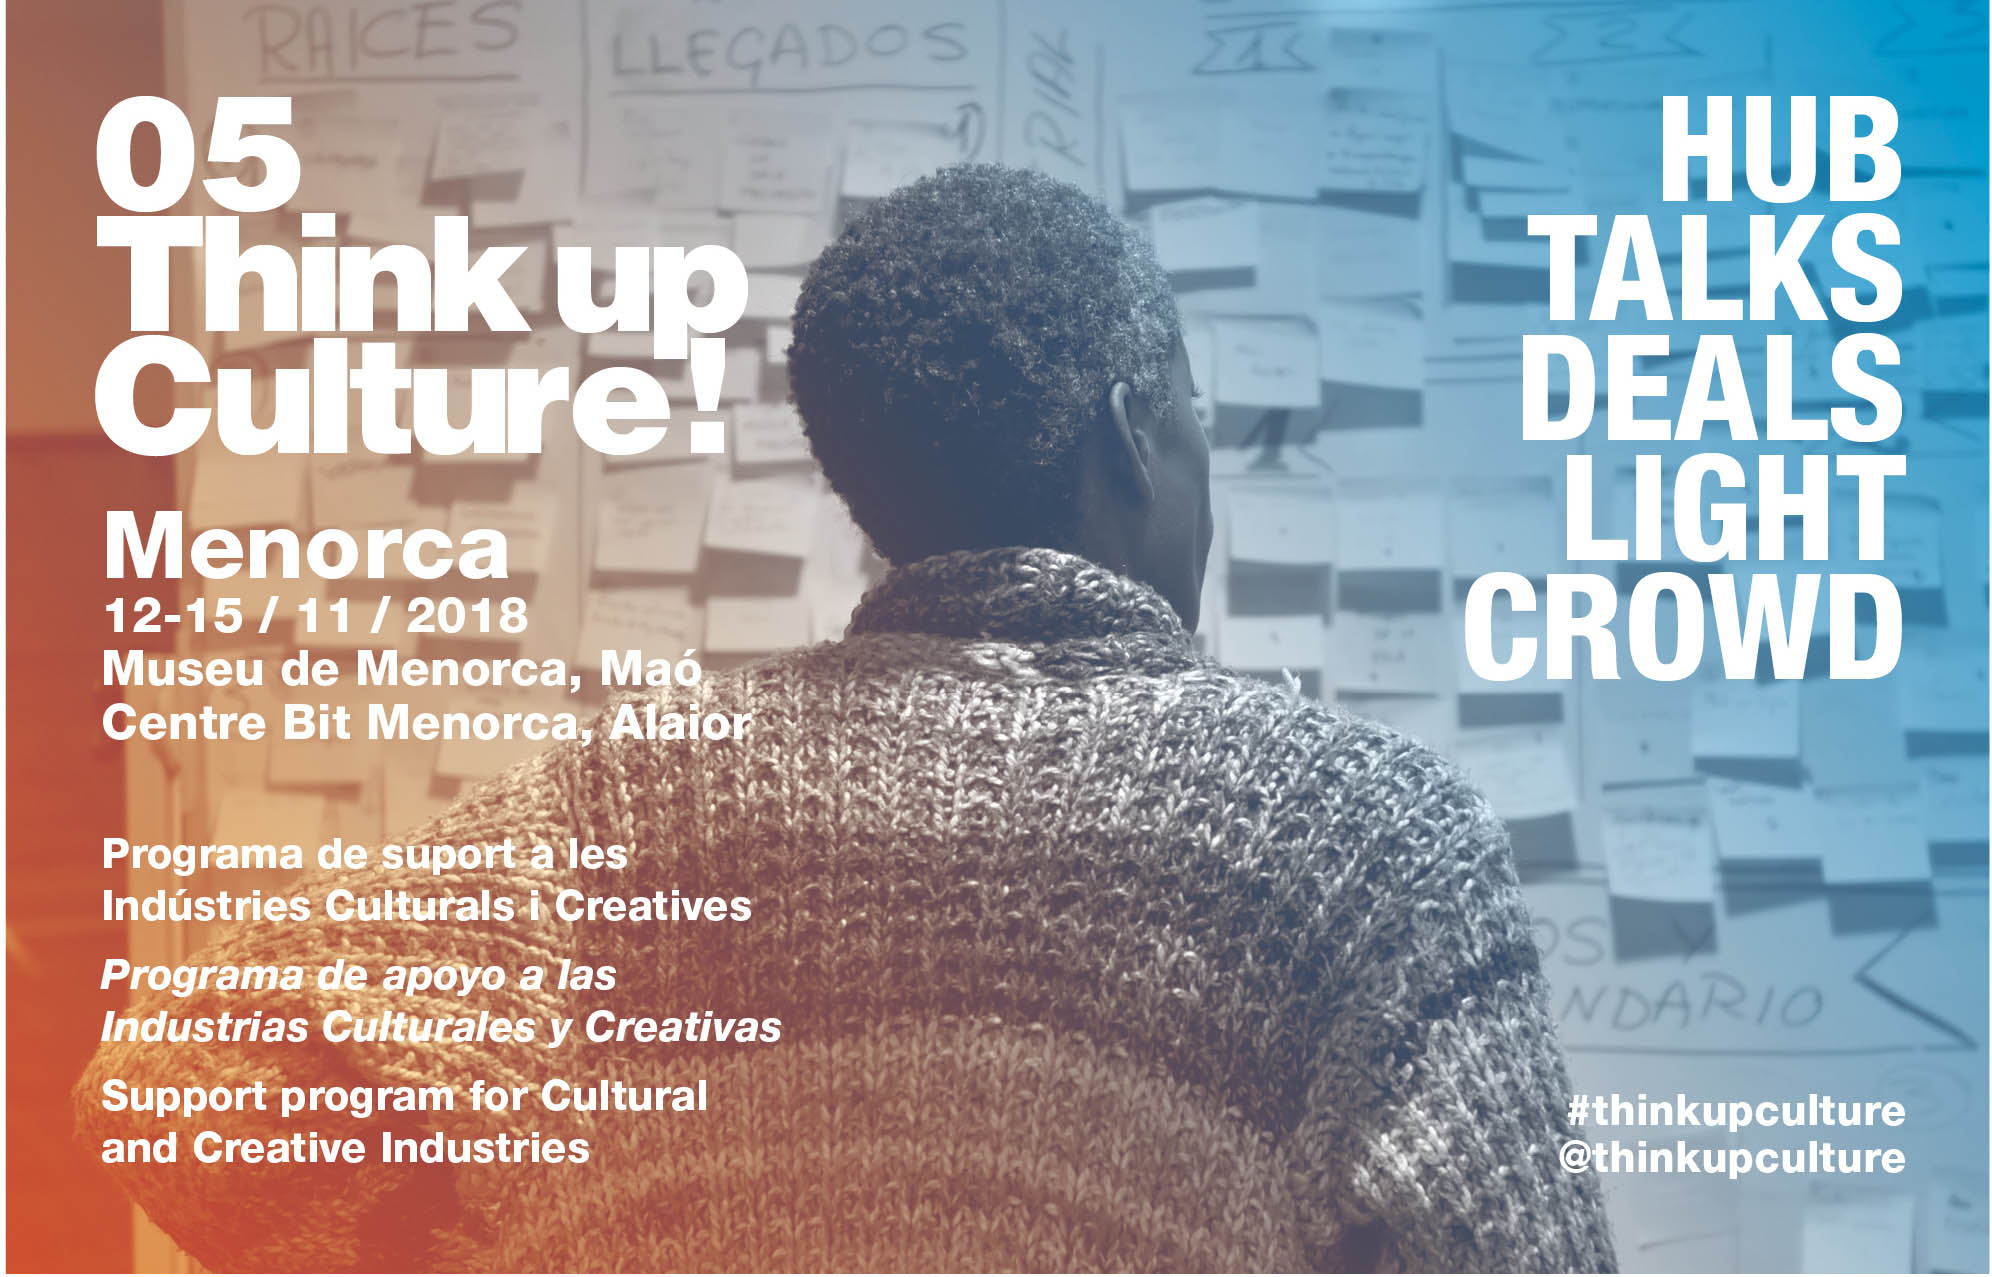 Think up Culture! Menorca